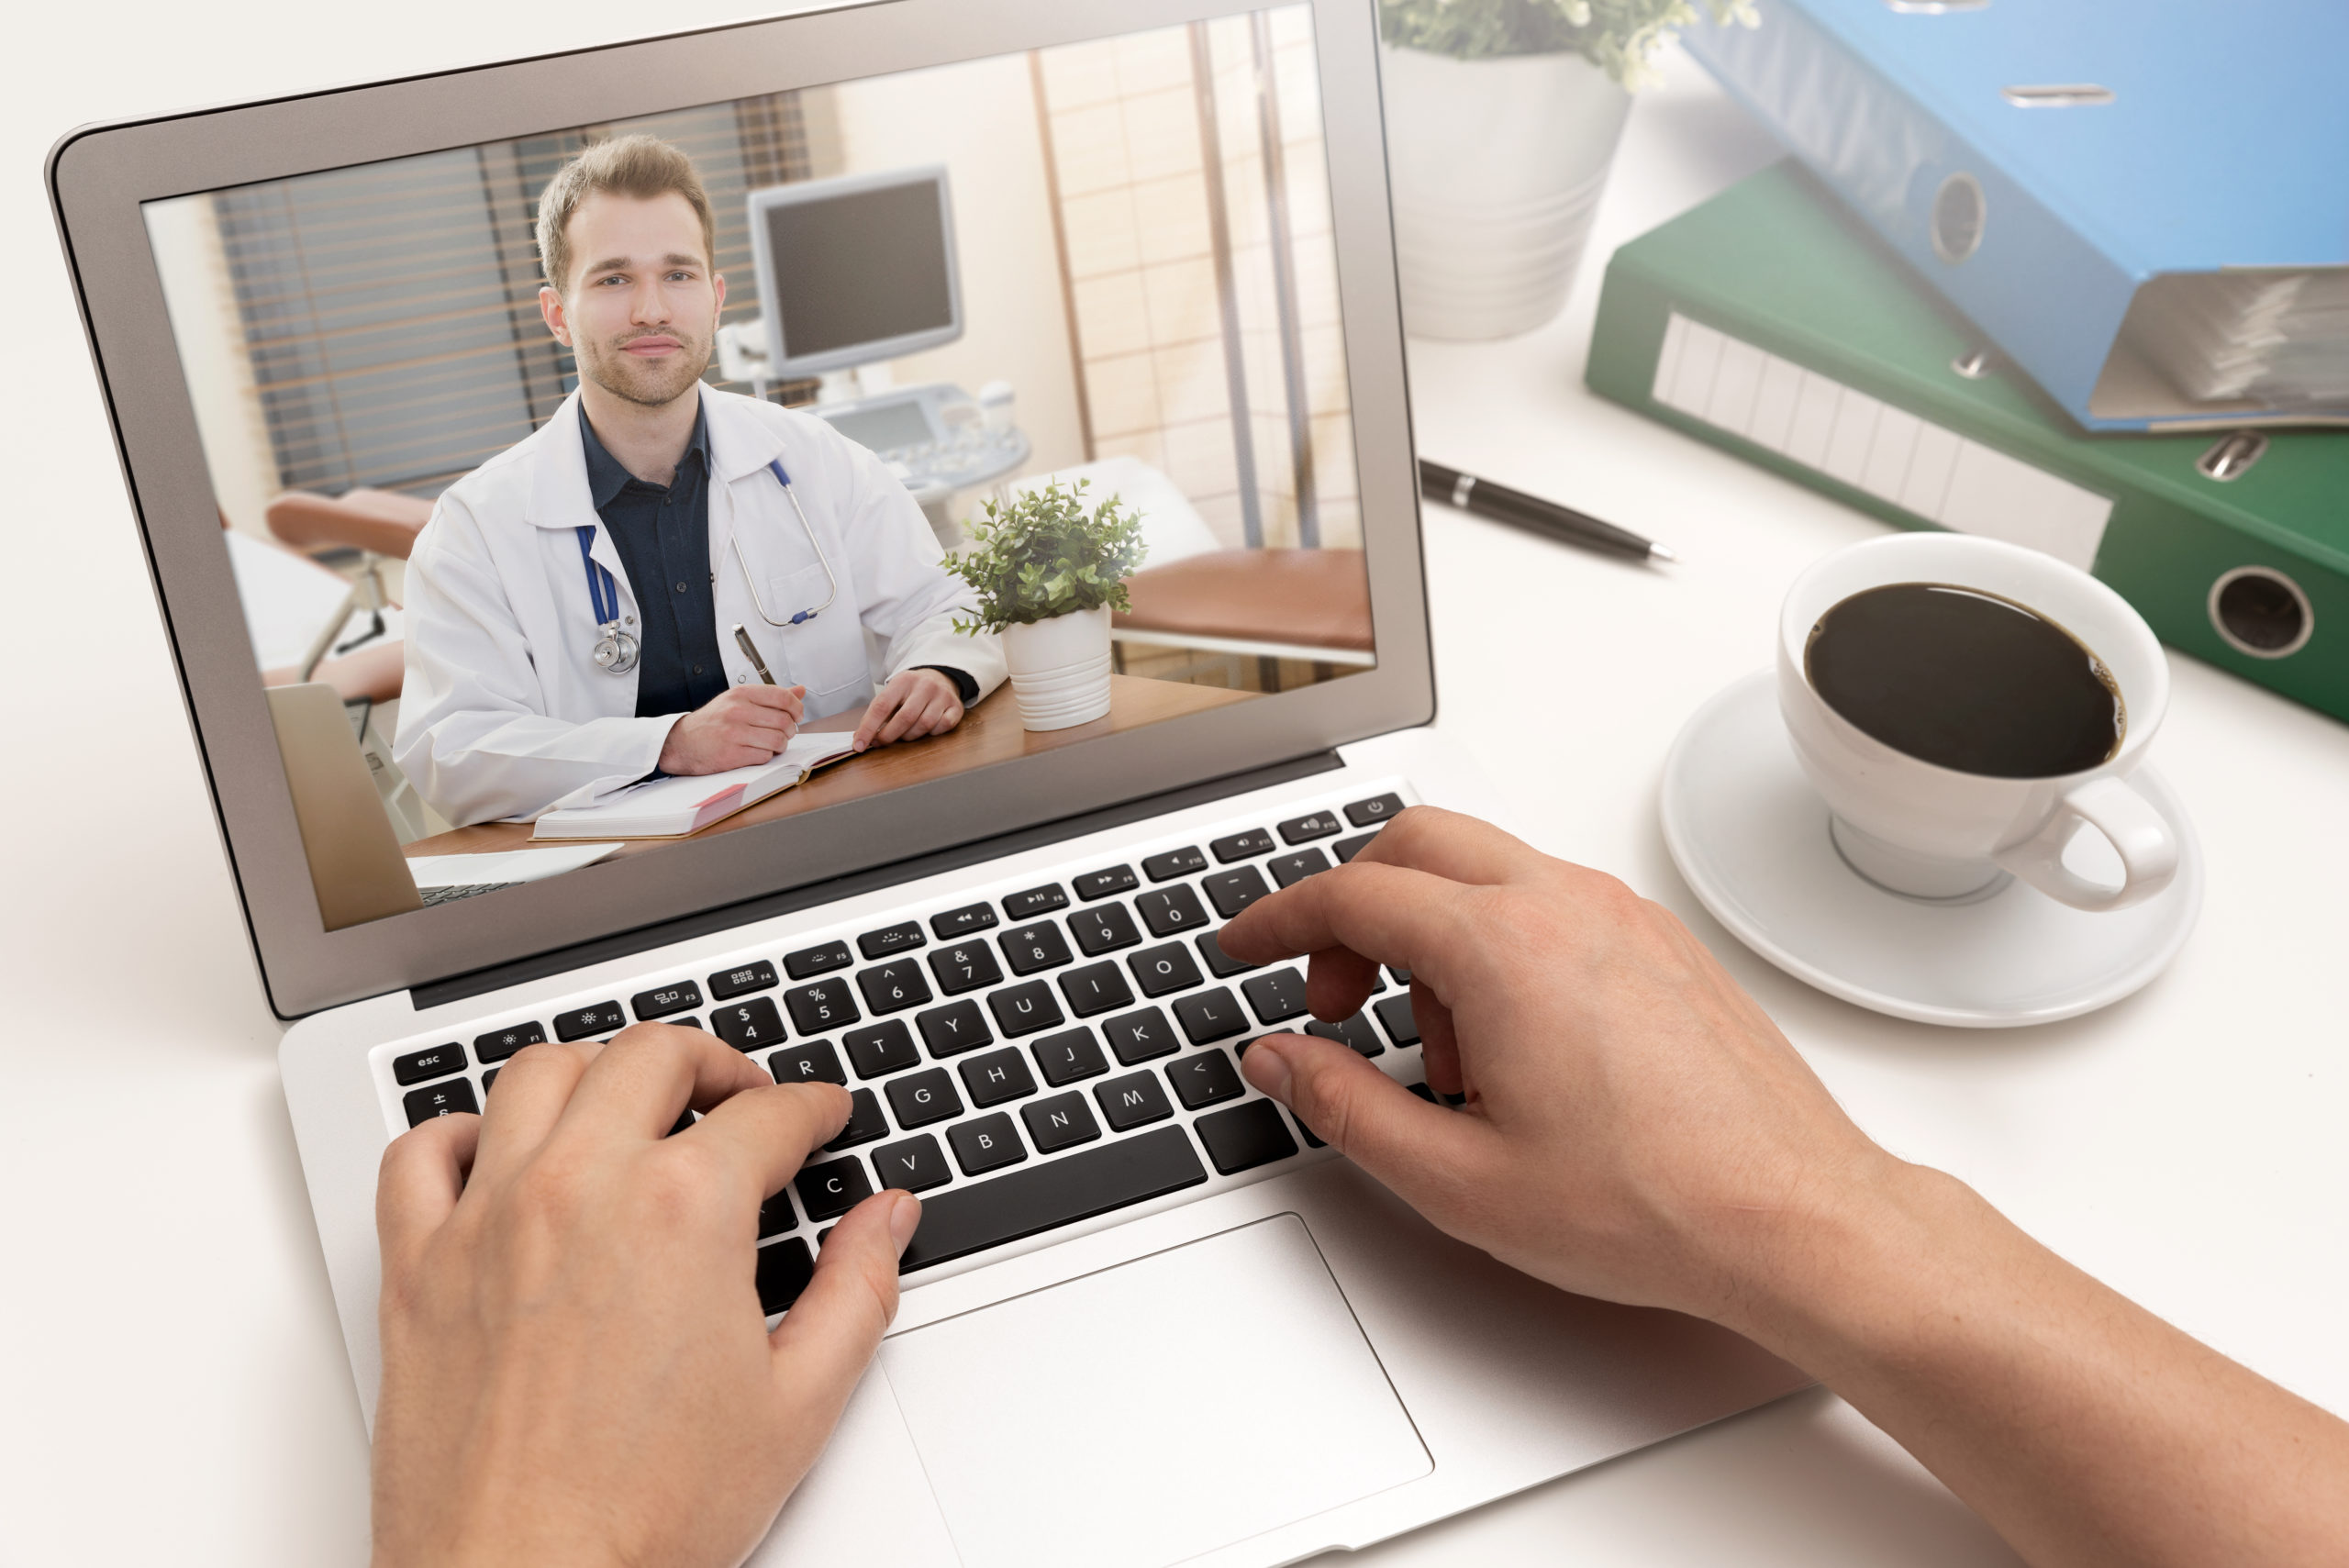 Doctor with a stethoscope on a laptop screen.